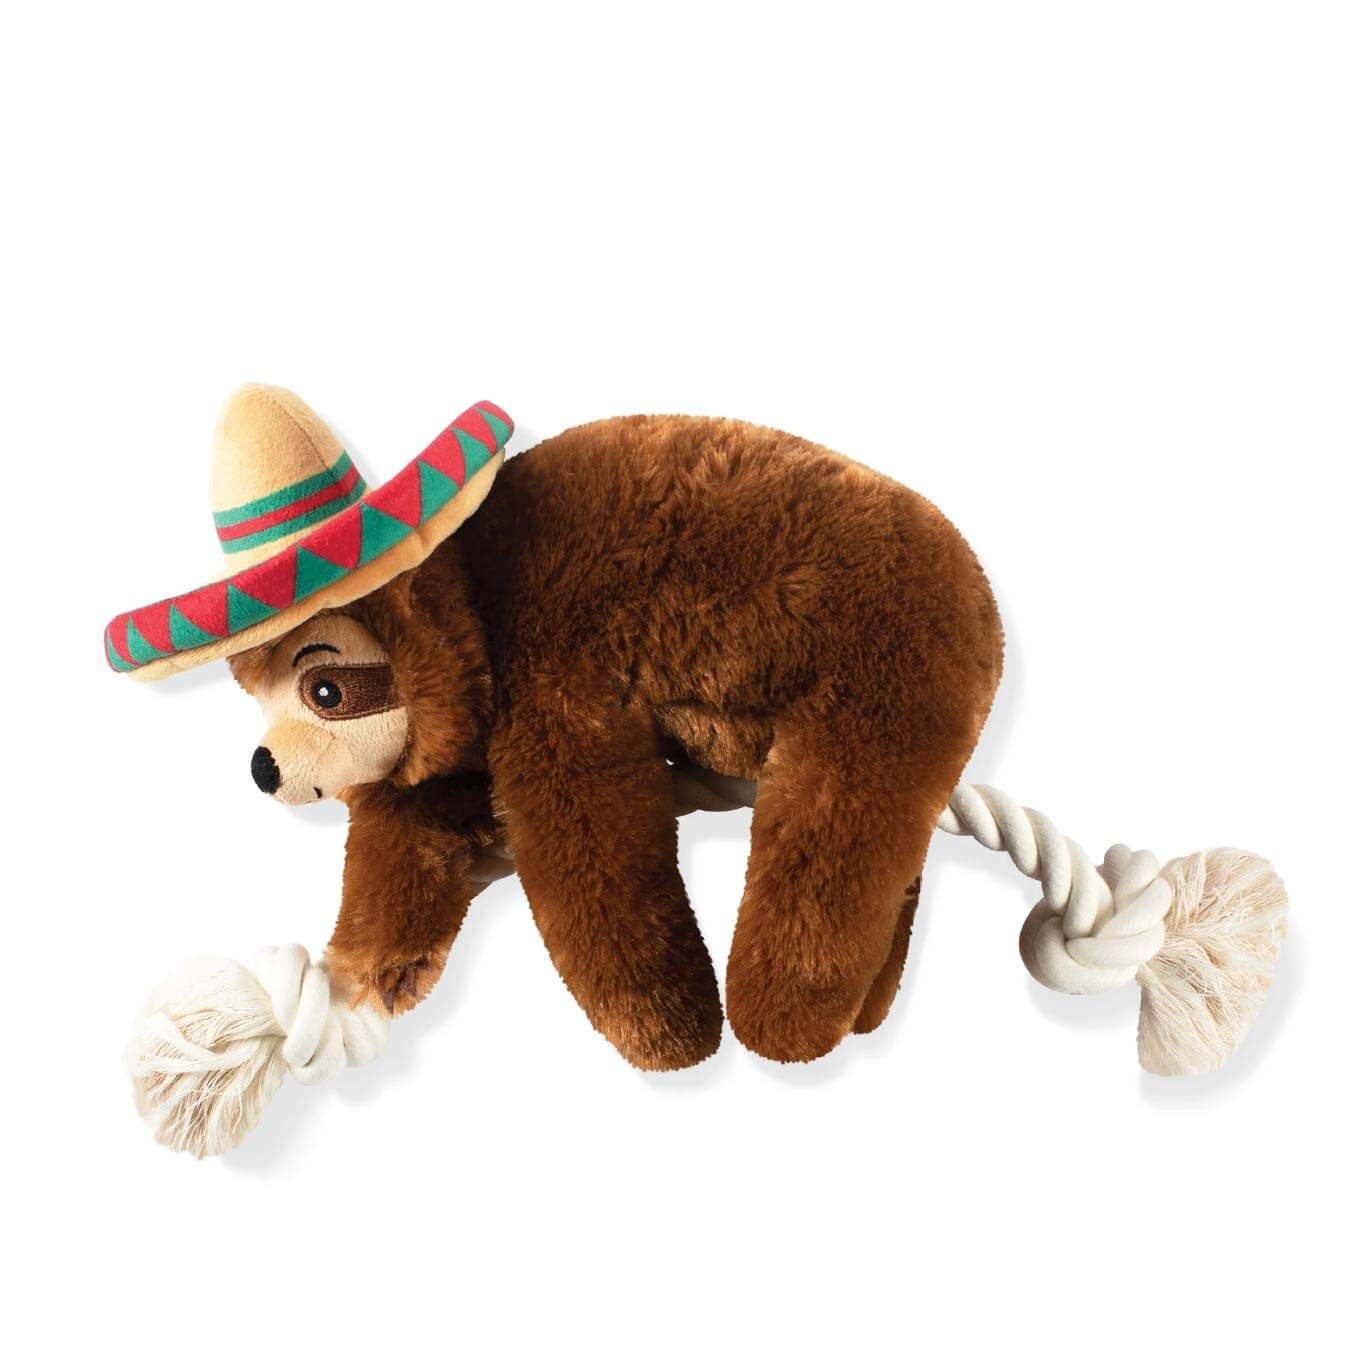 Fringe Studio Sombrero Sloth on a Rope - Vanillapup Online Pet Shop